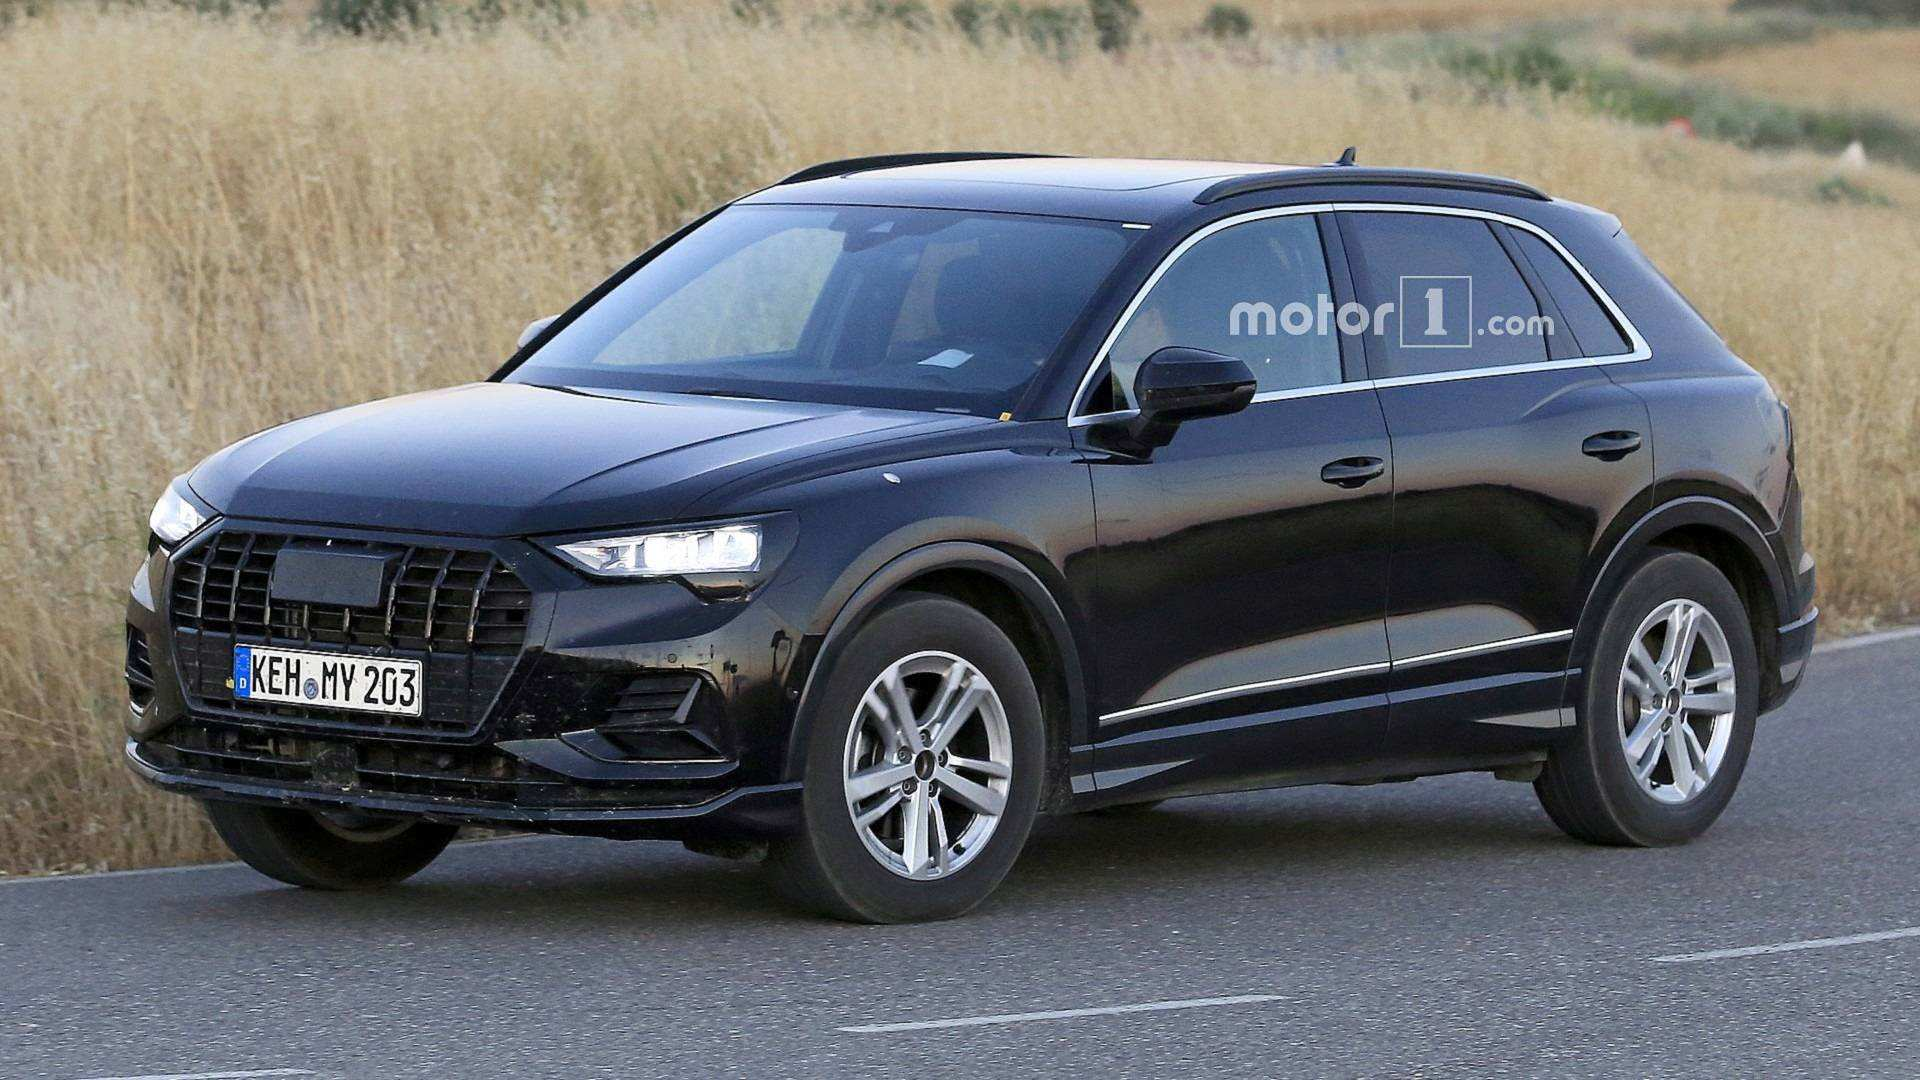 51 Gallery of 2020 Audi Q3 Ratings with 2020 Audi Q3